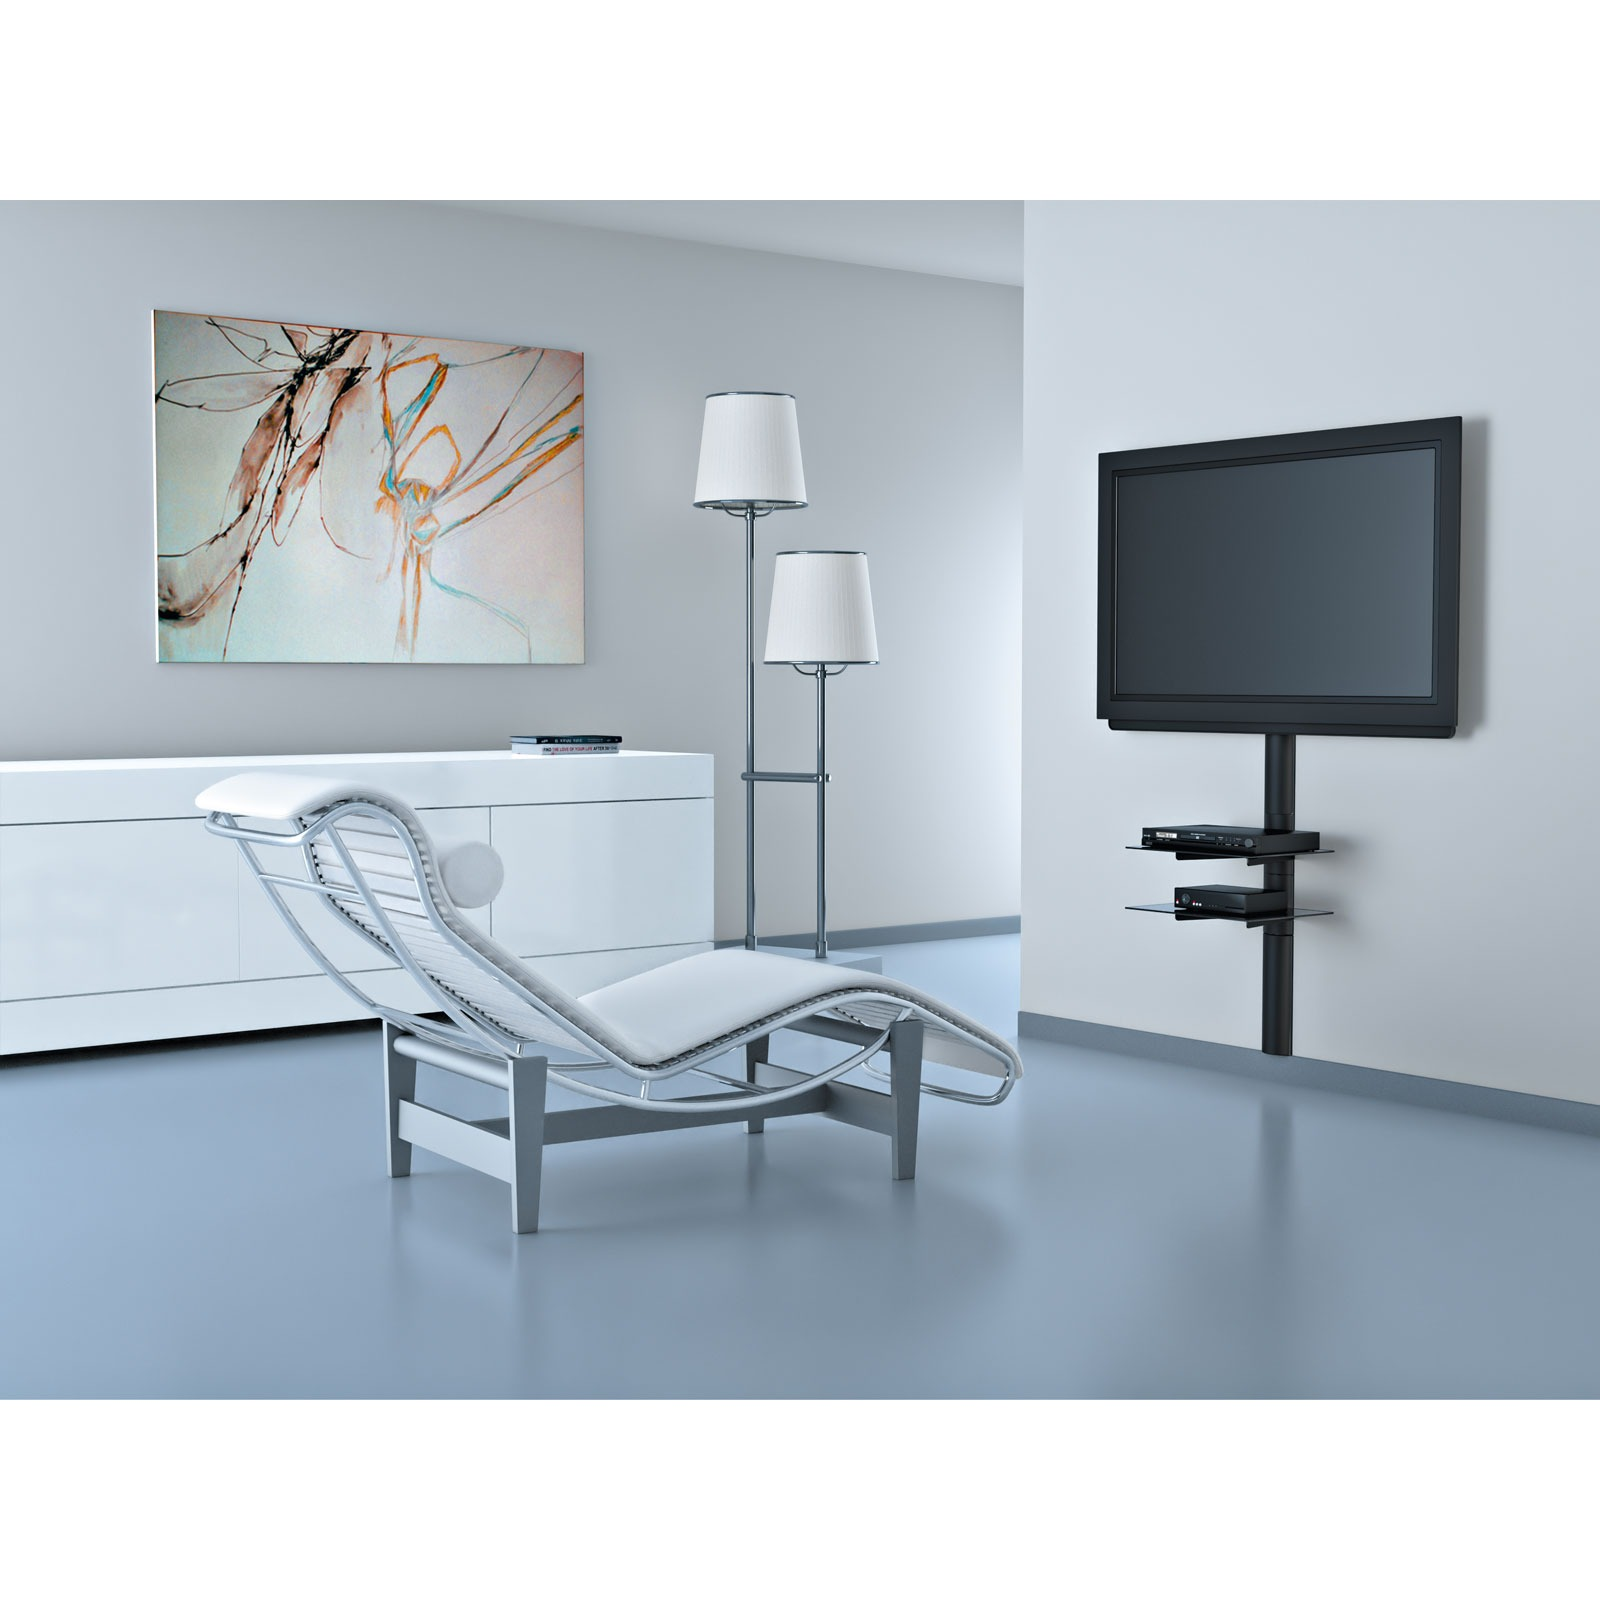 Meliconi line cover double noir support mural tv meliconi sur - Porta tv meliconi ...